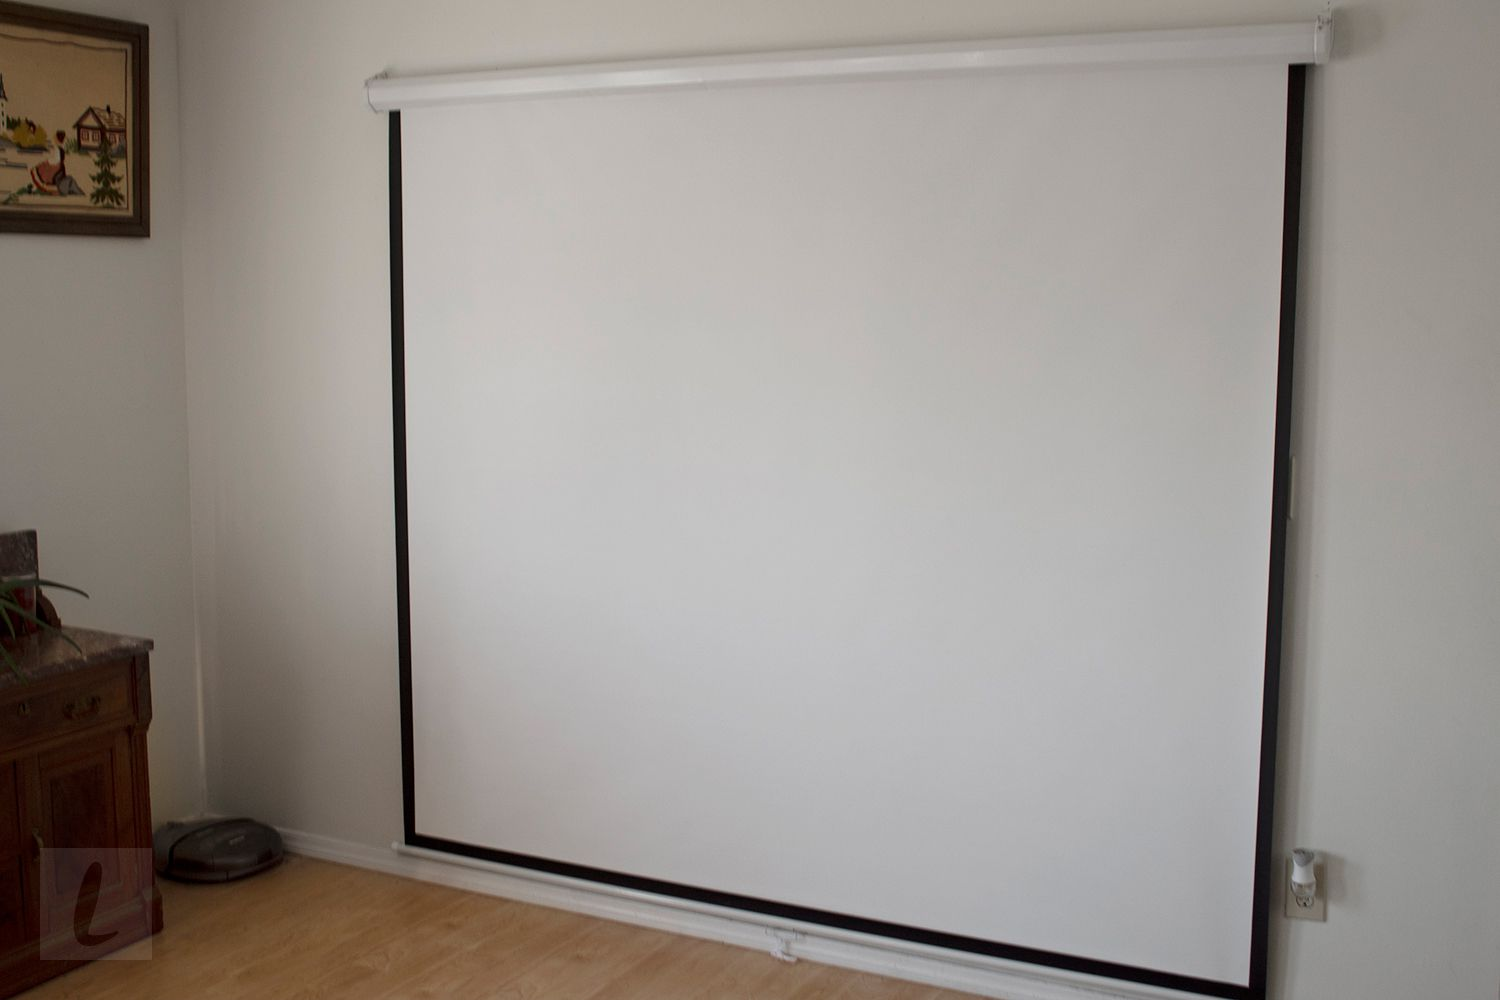 Best Choice Products 119-Inch HD Indoor Pull Down Projector Screen